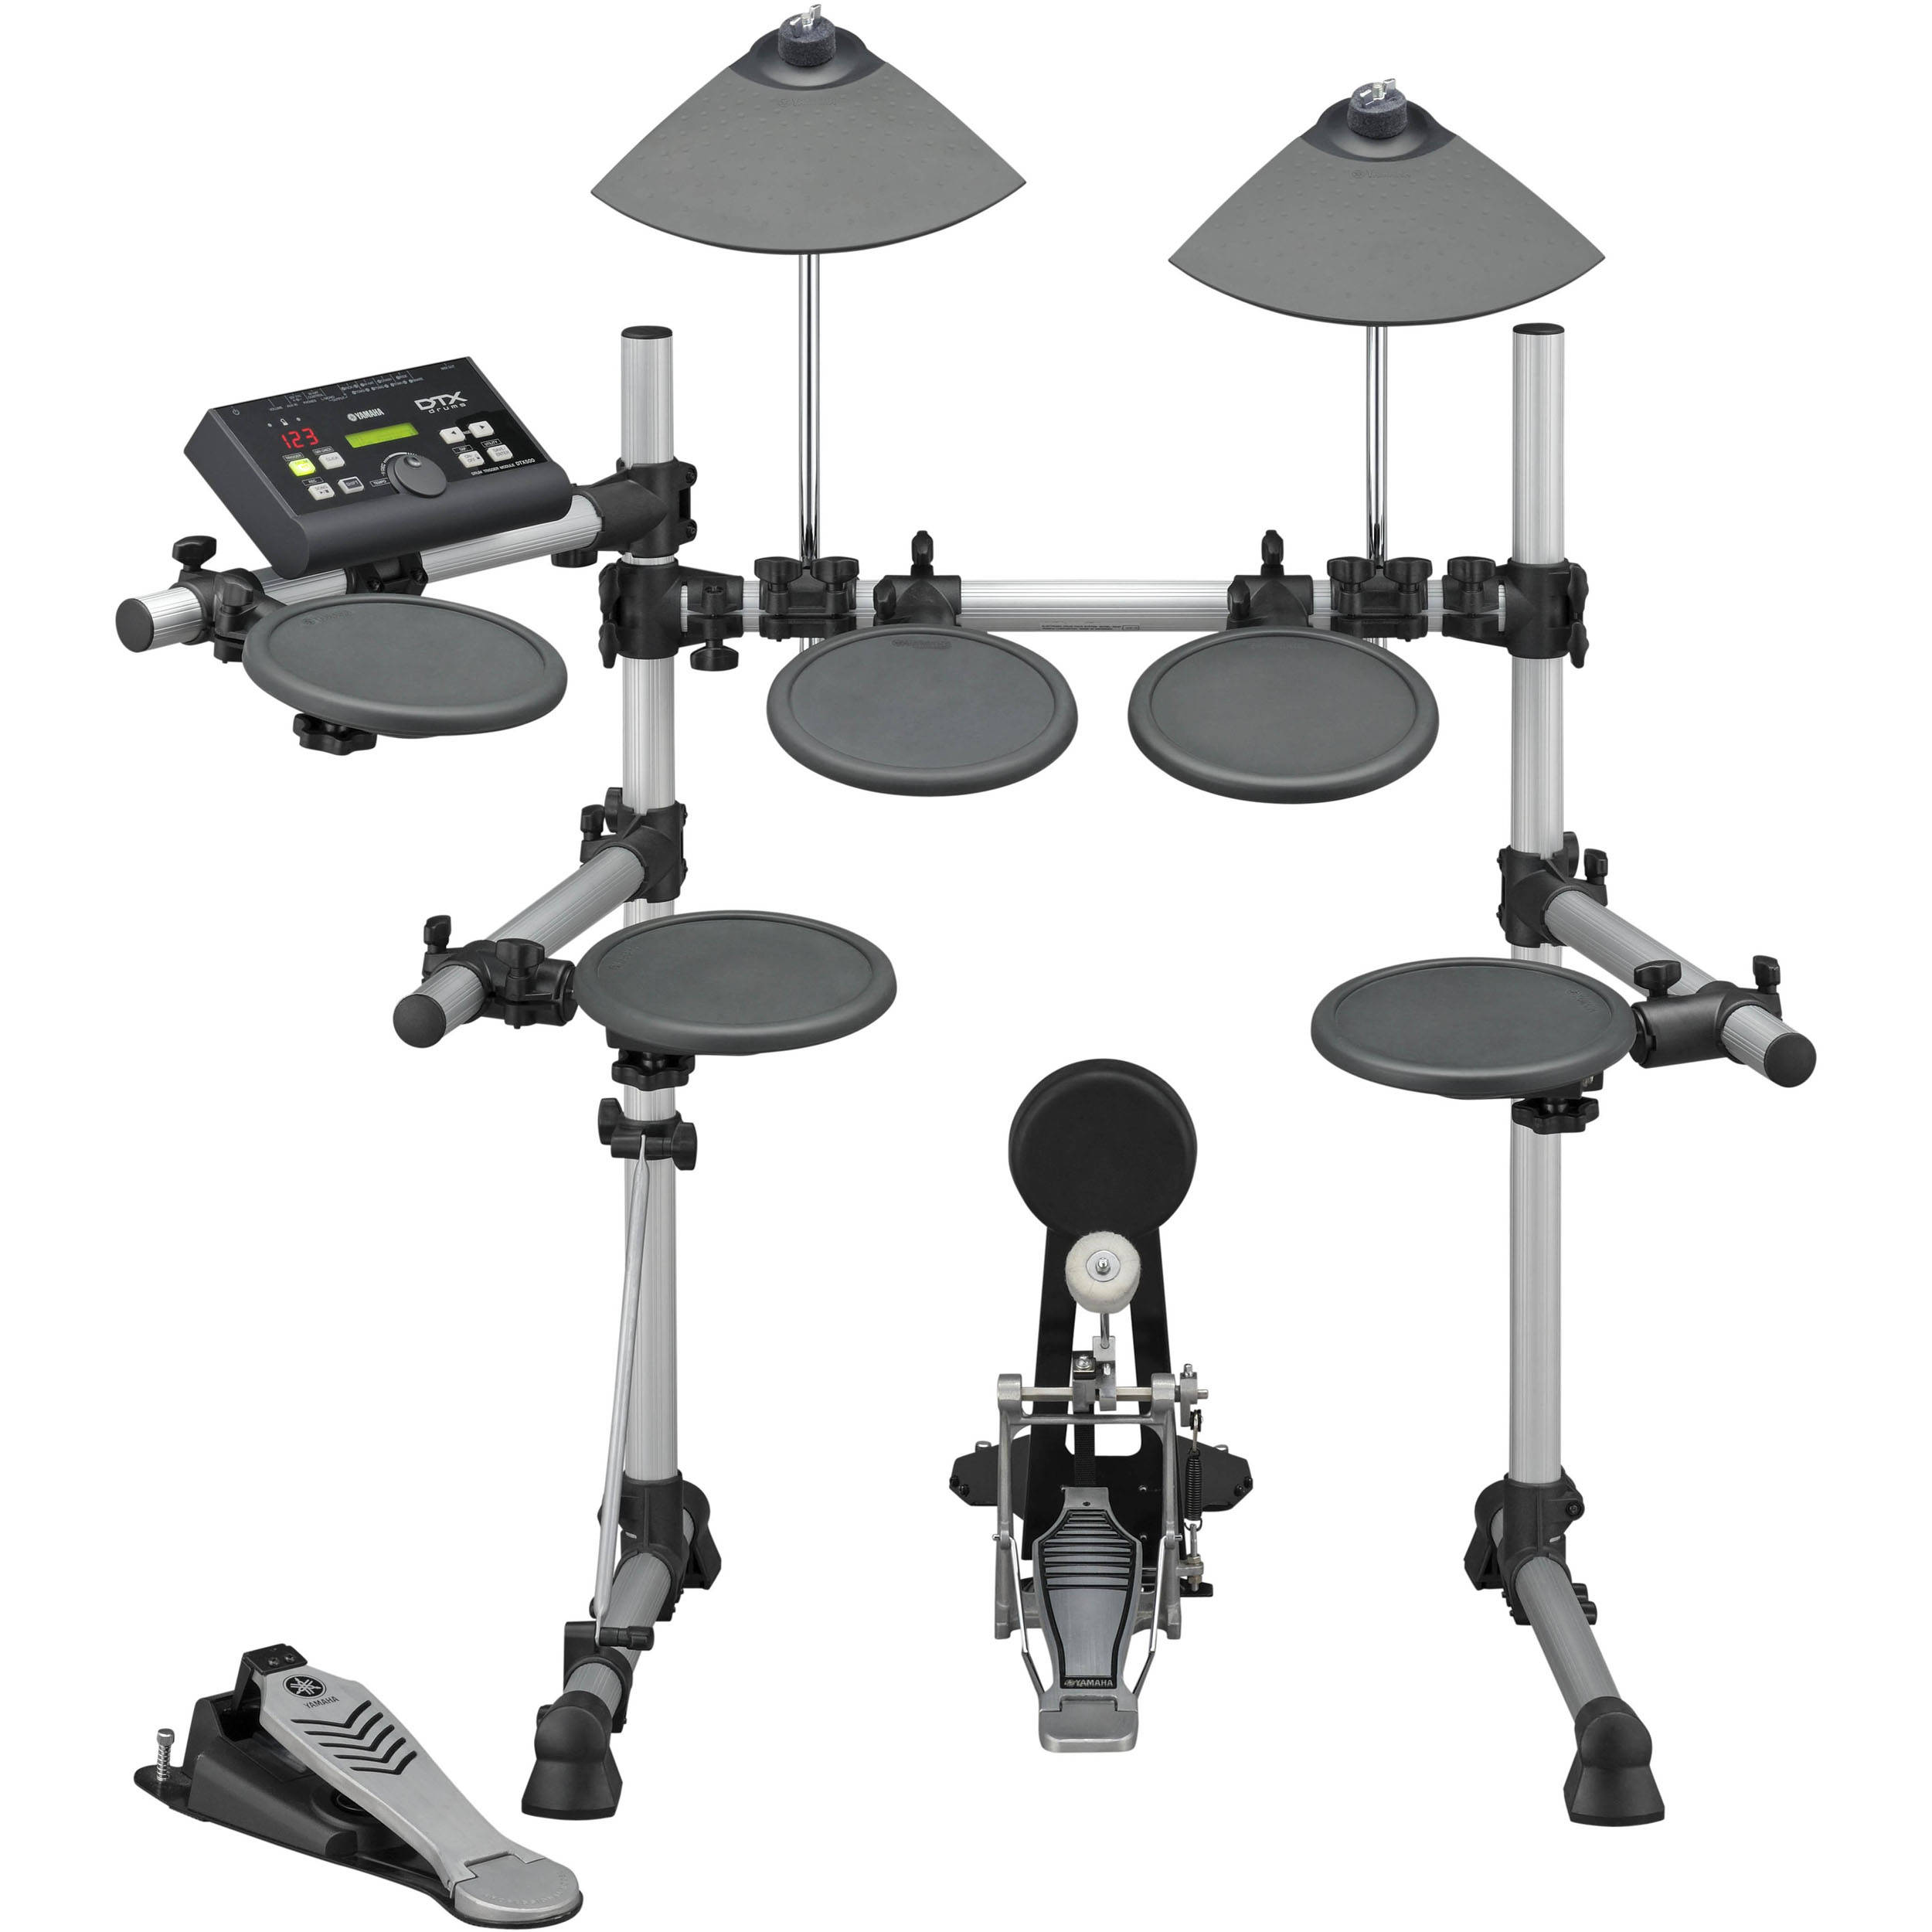 Yamaha dtx500k electronic drum set b h kit dtx500k b h photo for Electric drum set yamaha